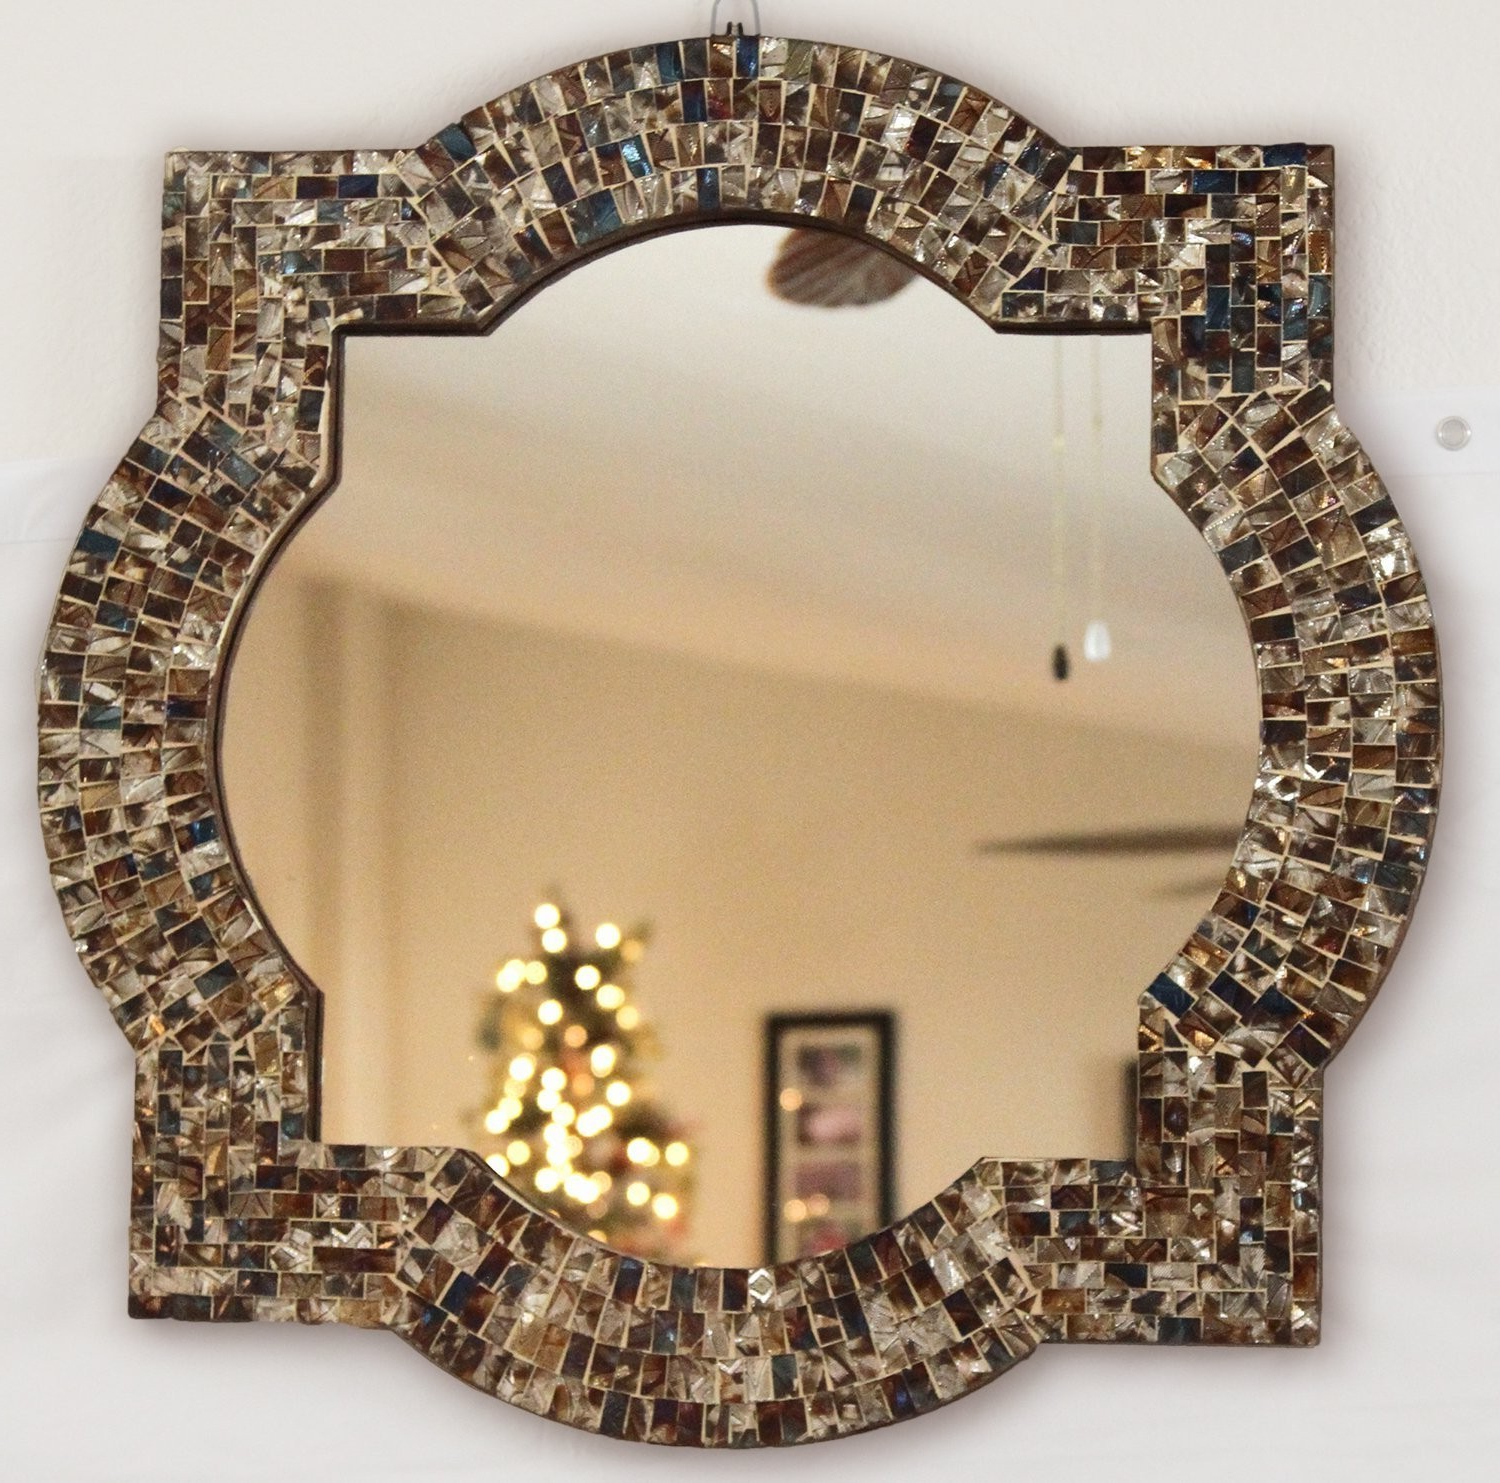 Newest Andalusian Quatrefoil Mirror, Lindaraja Designer Mosaic Glass In Colorful Wall Mirrors (View 4 of 20)